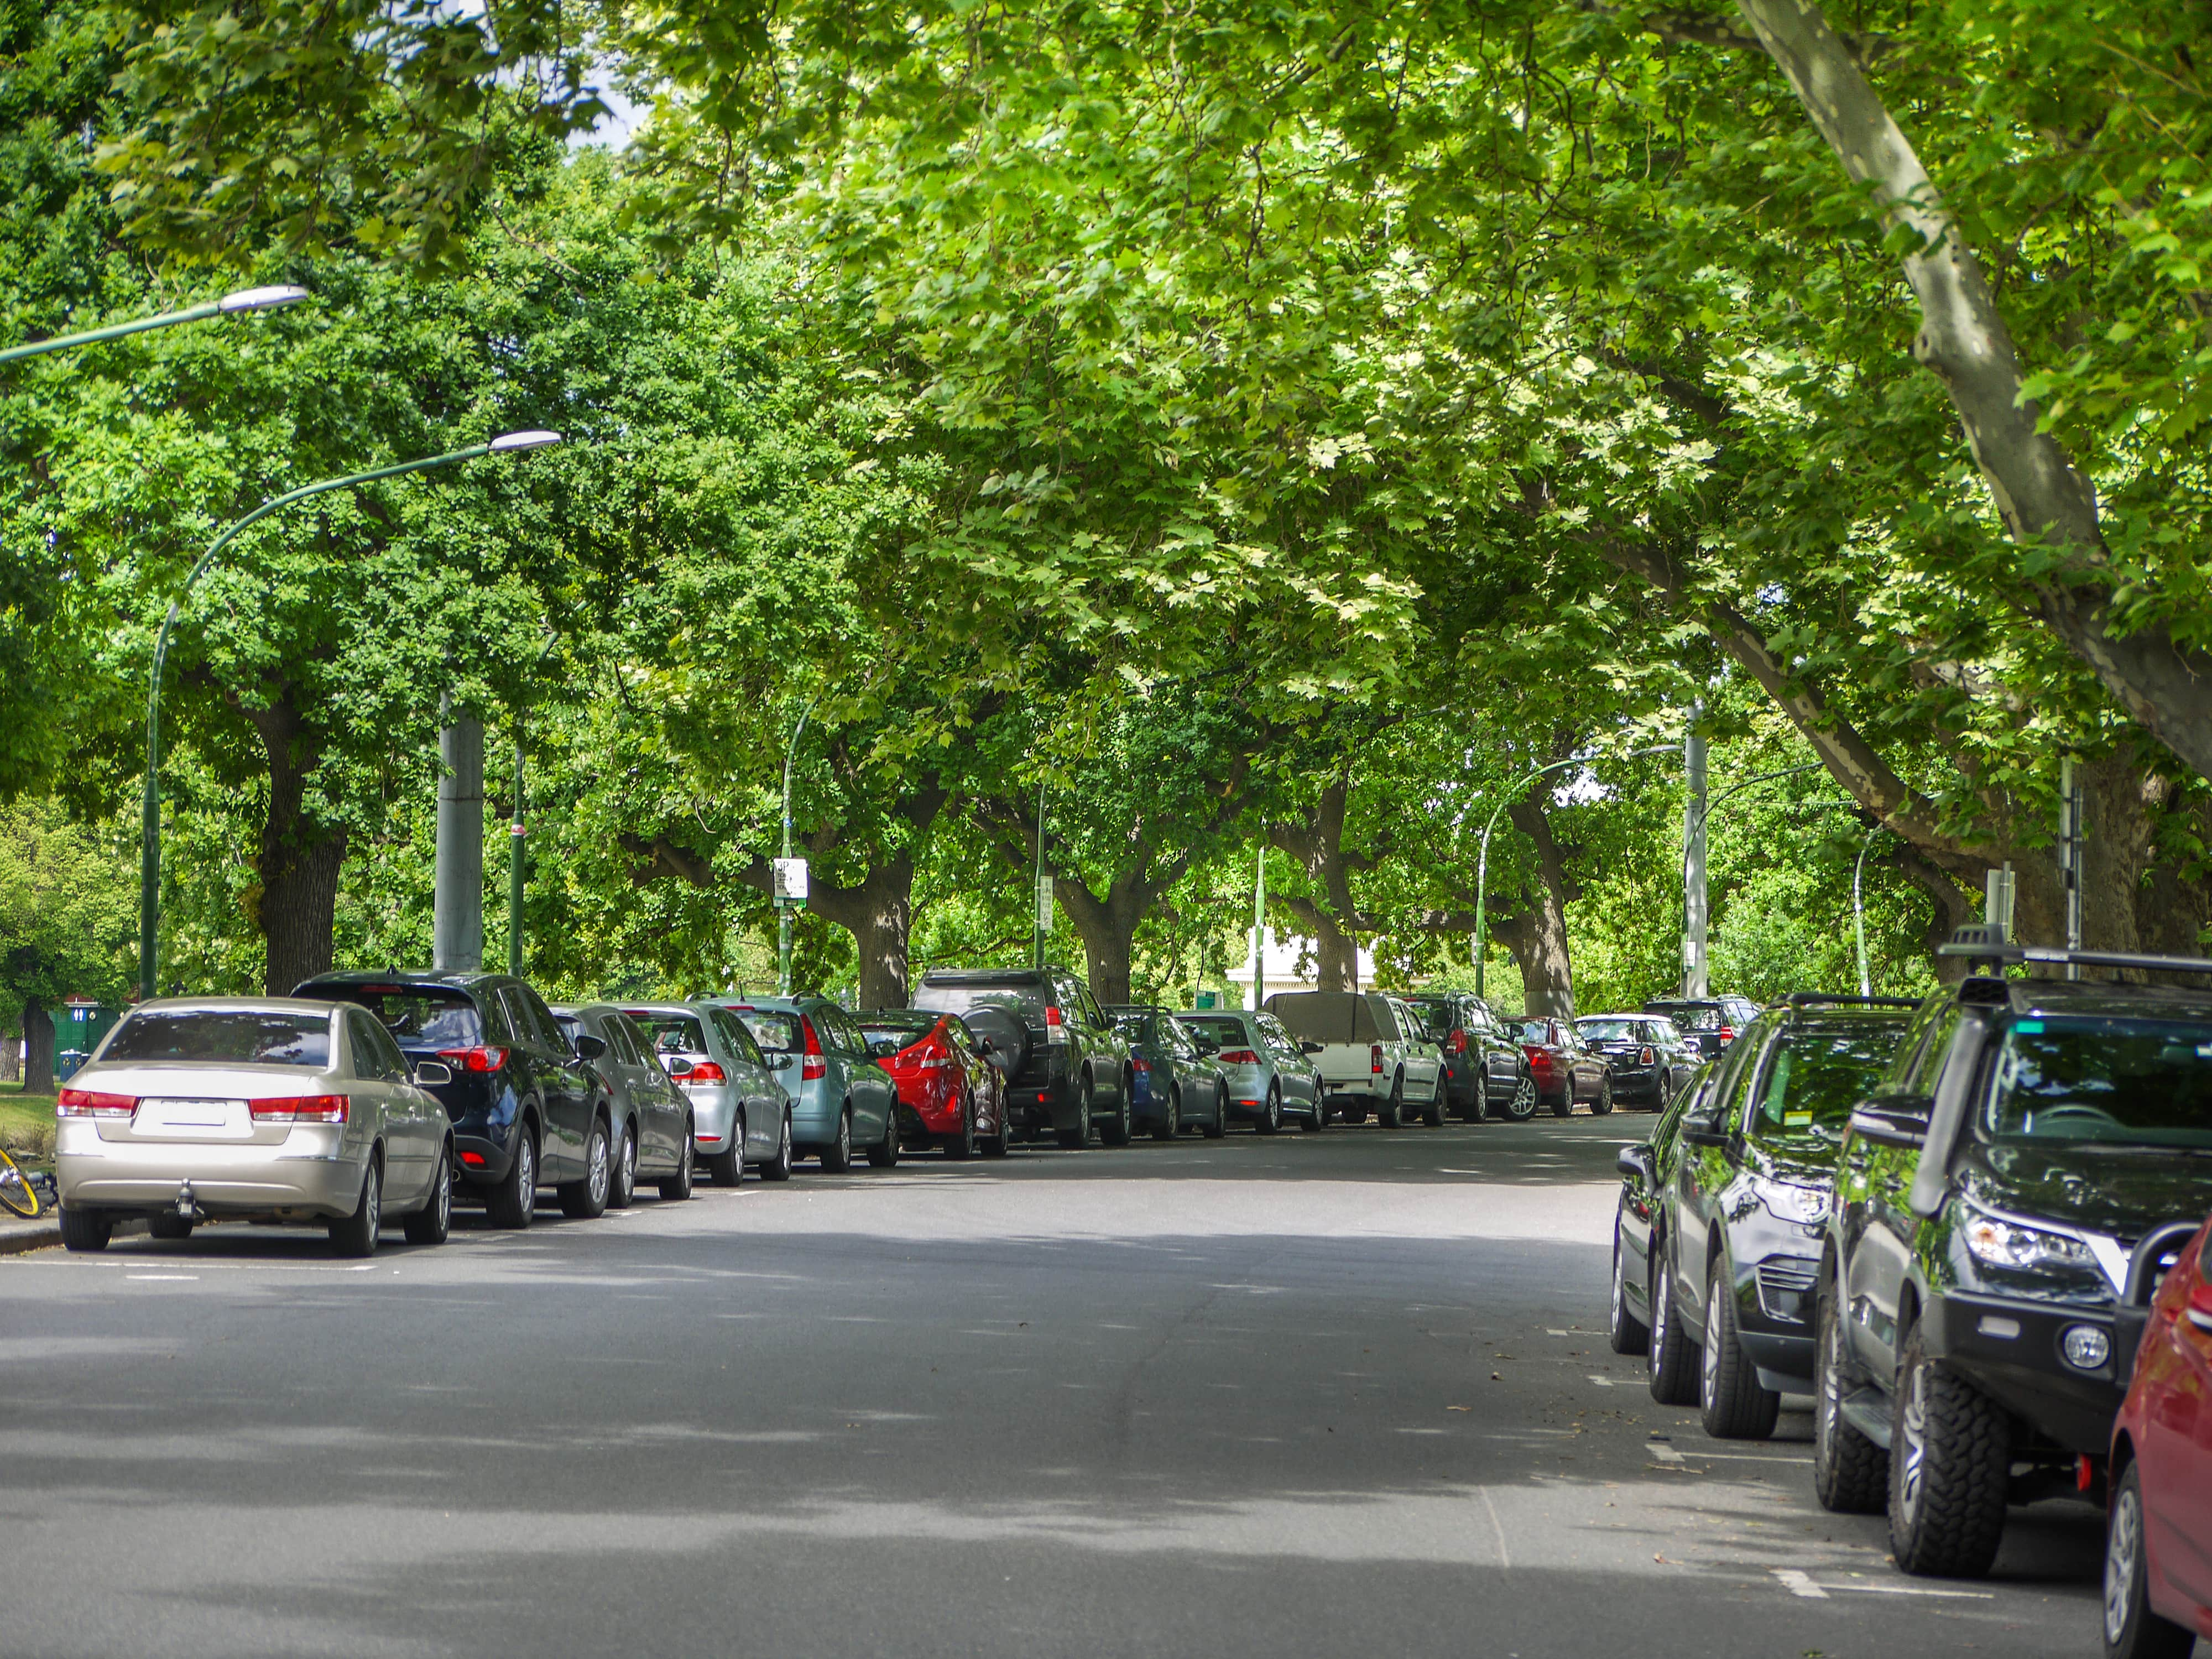 many-cars-parked-lined-under-trees